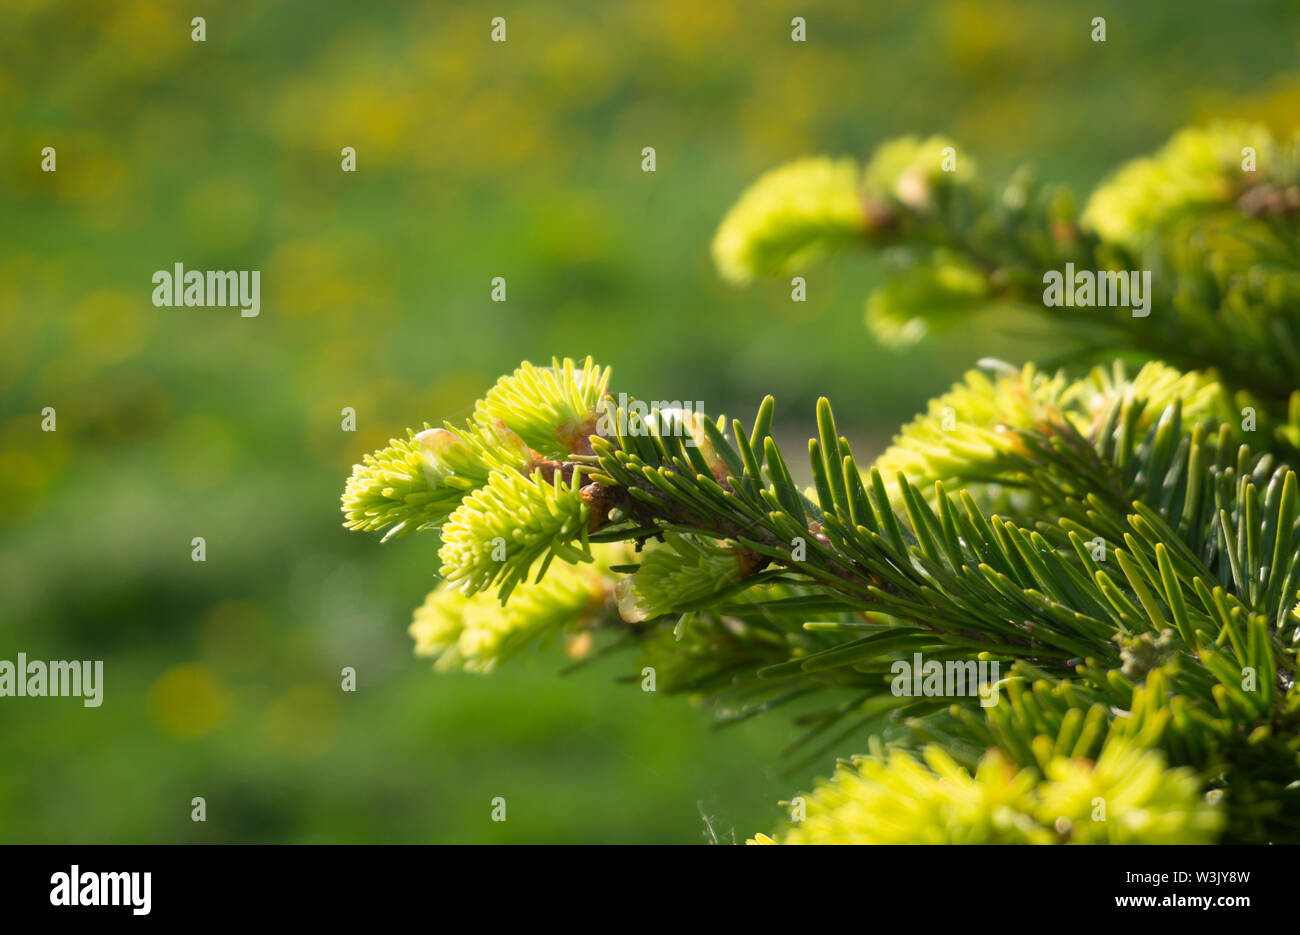 Fresh green needles sprouting at the end of a branch on a conifer in spring symbolic of the seasons in a close up detailed view Stock Photo